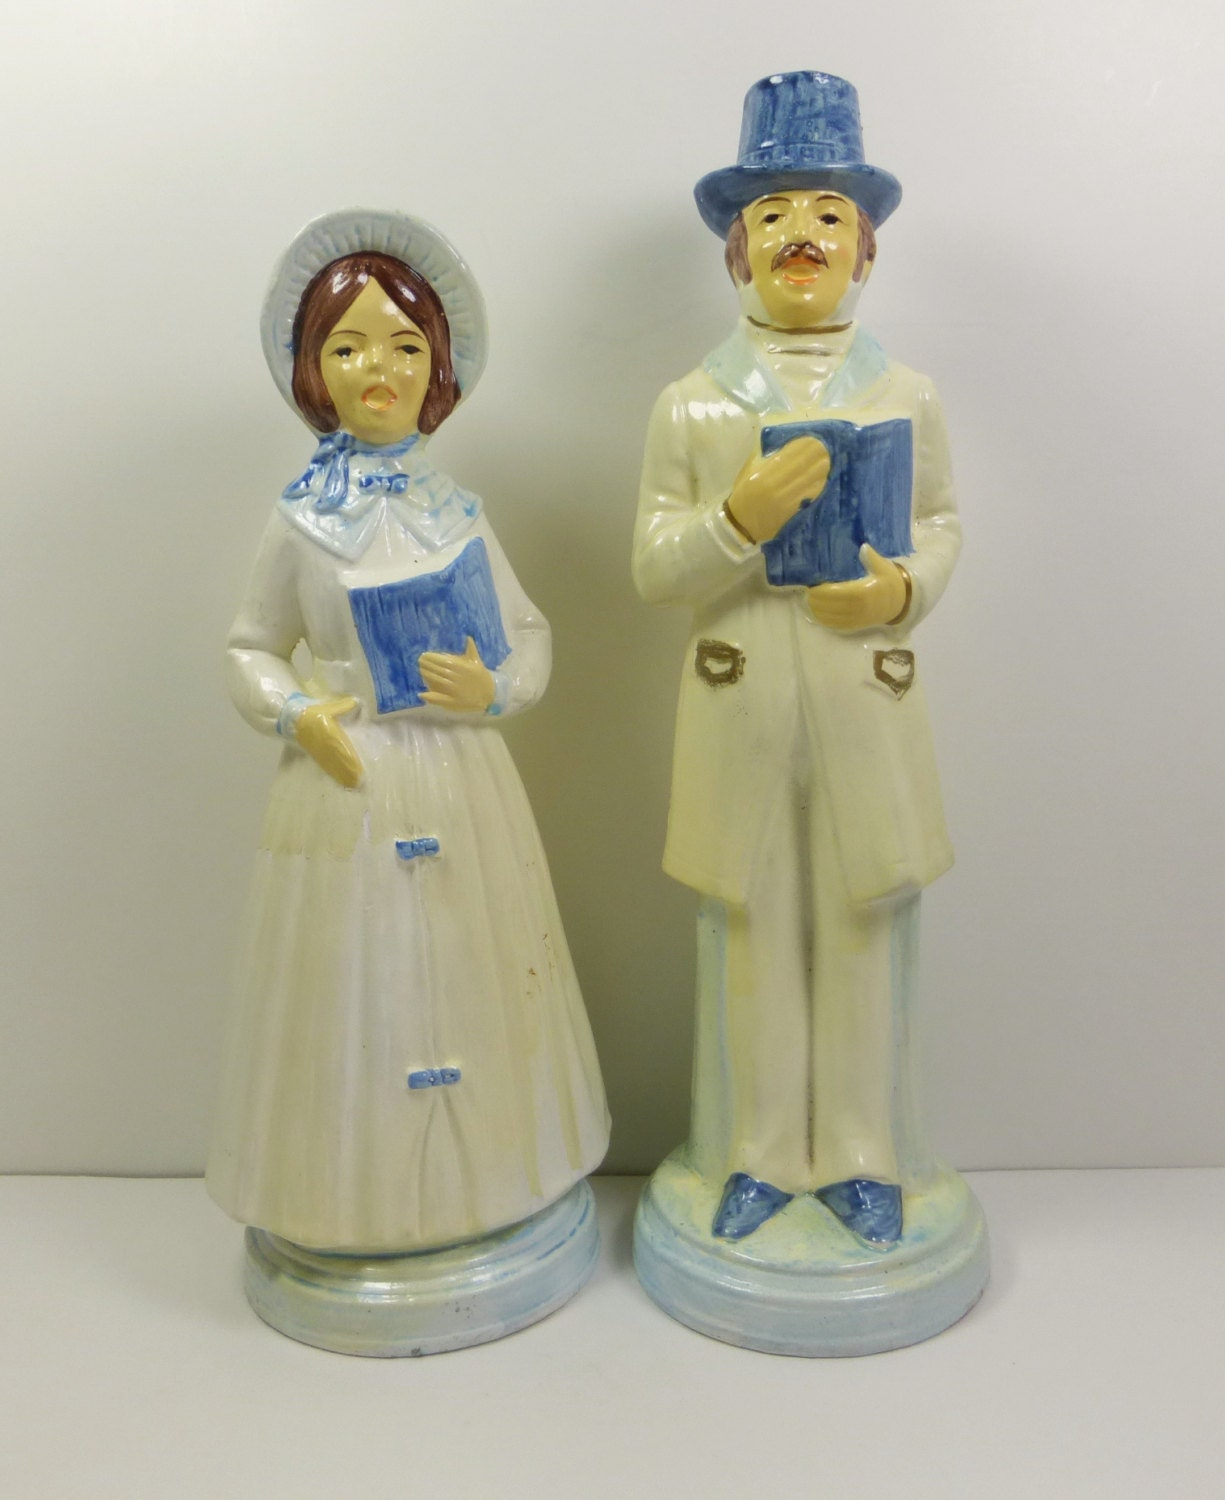 Victorian Christmas Carolers Figurines: Victorian Christmas Caroler Figurines Blue And By Naturegirl22